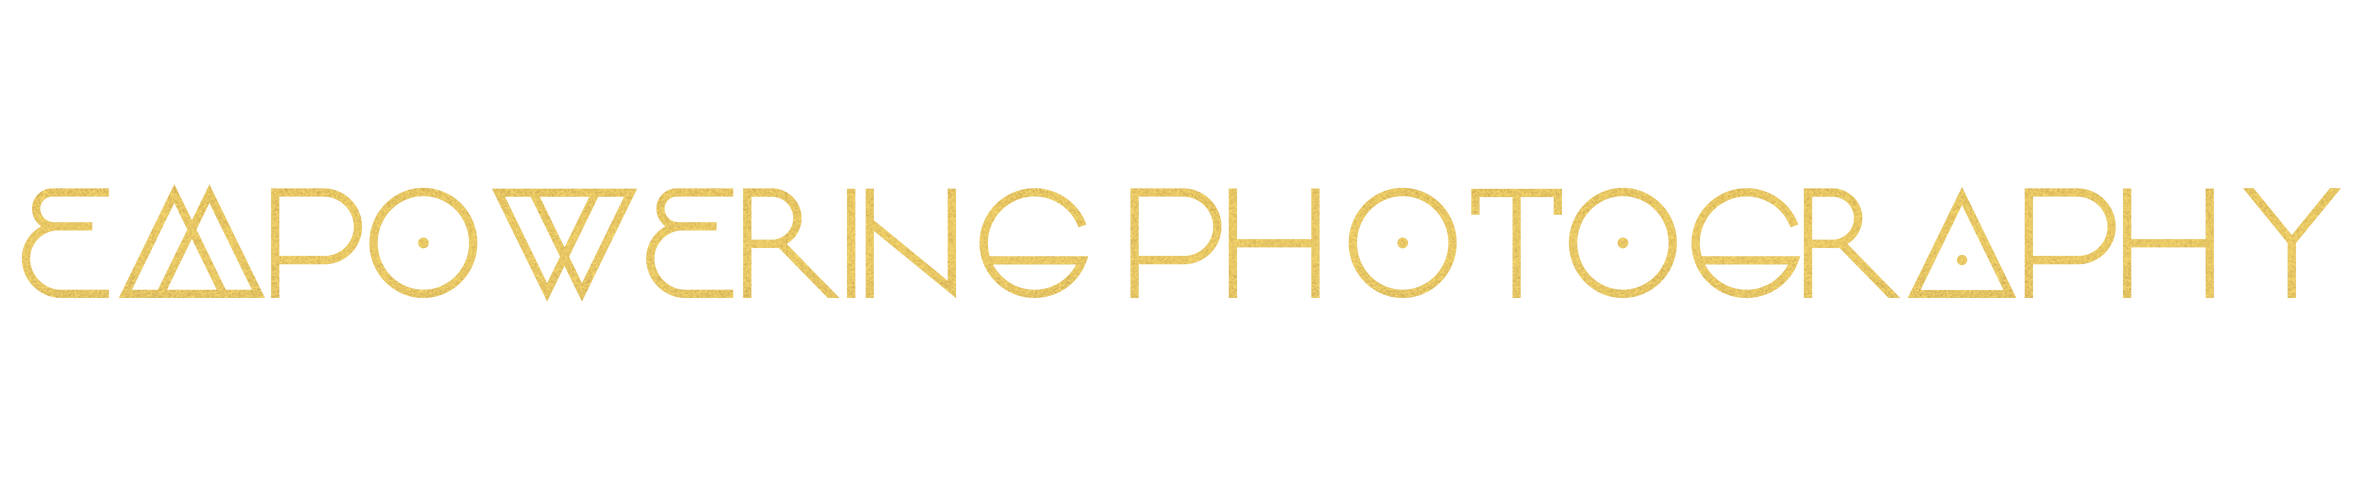 Photography Page header.png